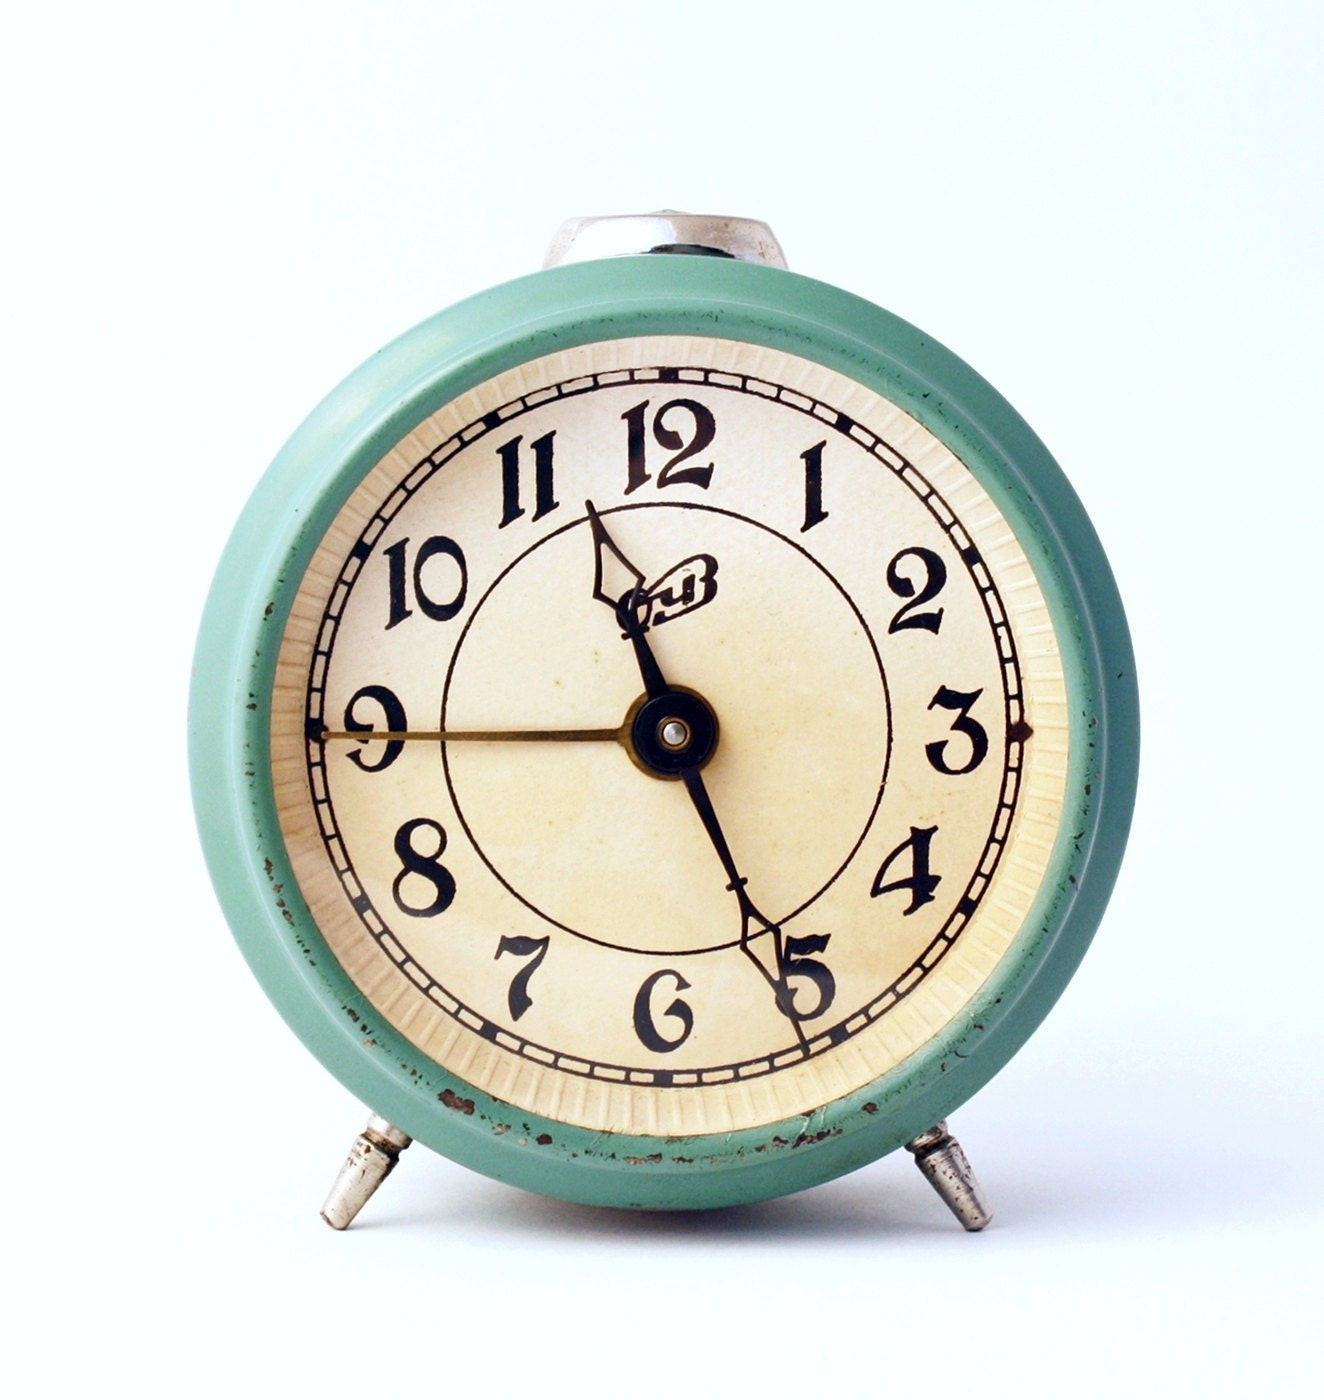 RARE Vintage Russian mechanical alarm clock by ClockworkUniverse